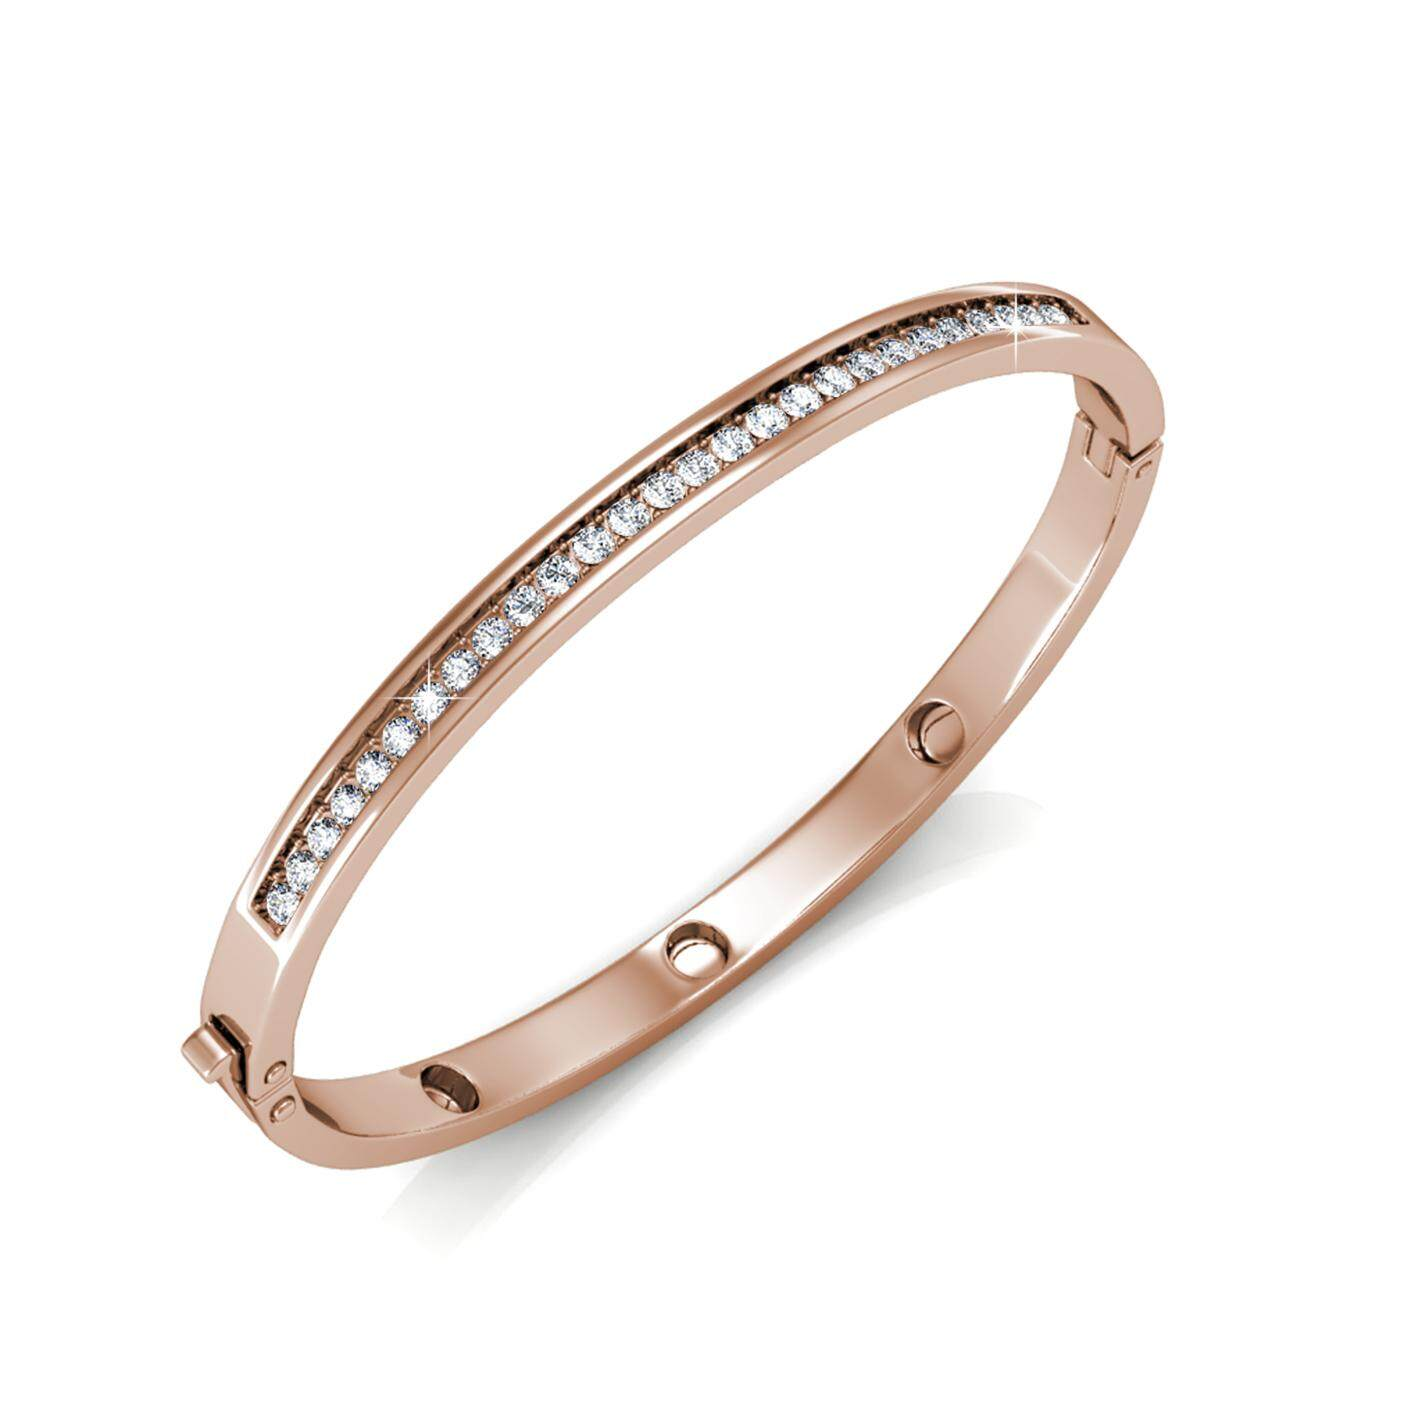 Her Jewellery Classic Bangle (Rose / White Gold) embellished with Crystals from Swarovski